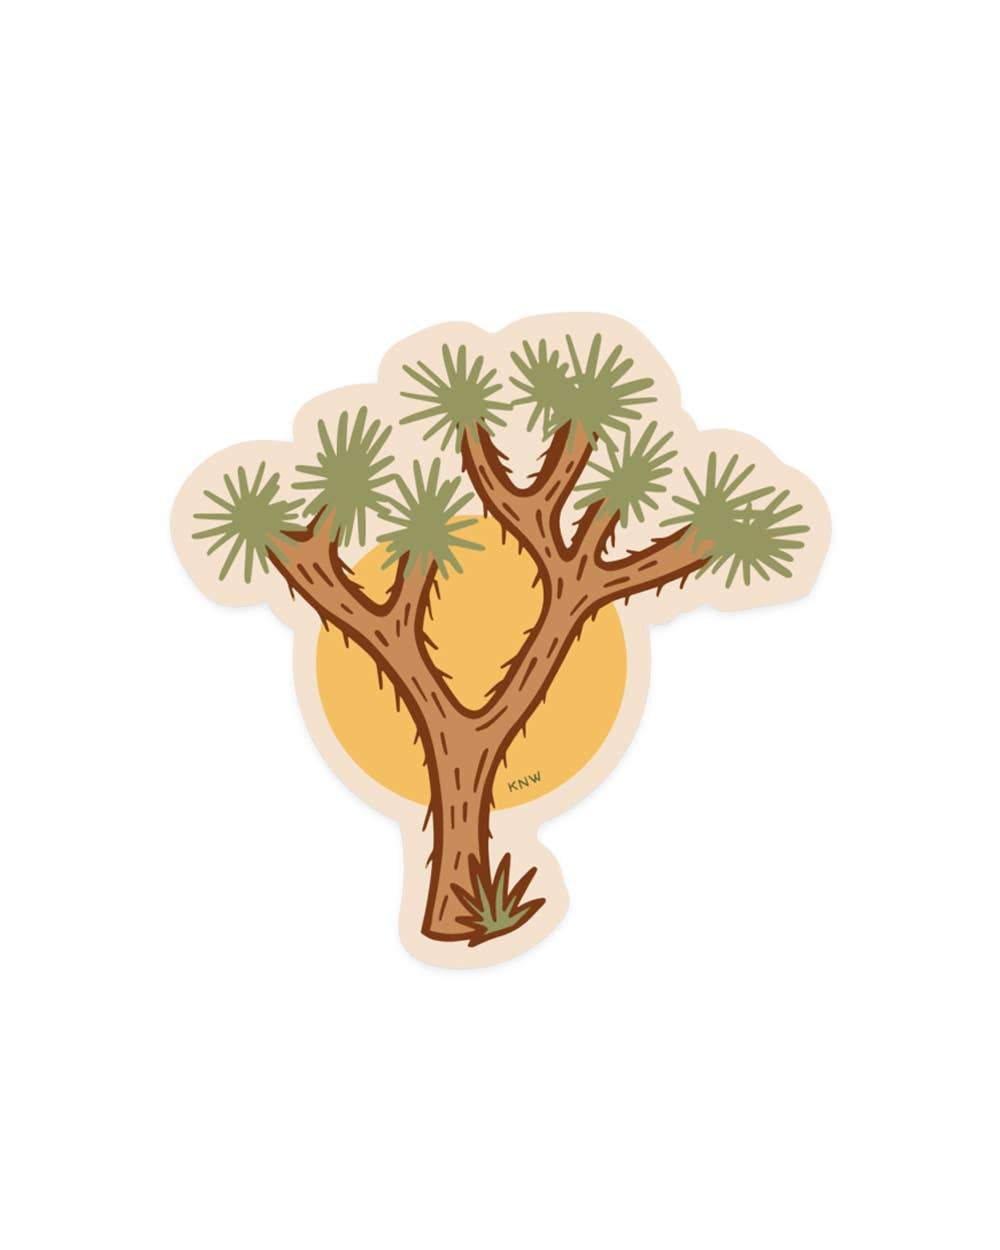 Joshua Tree - Sticker